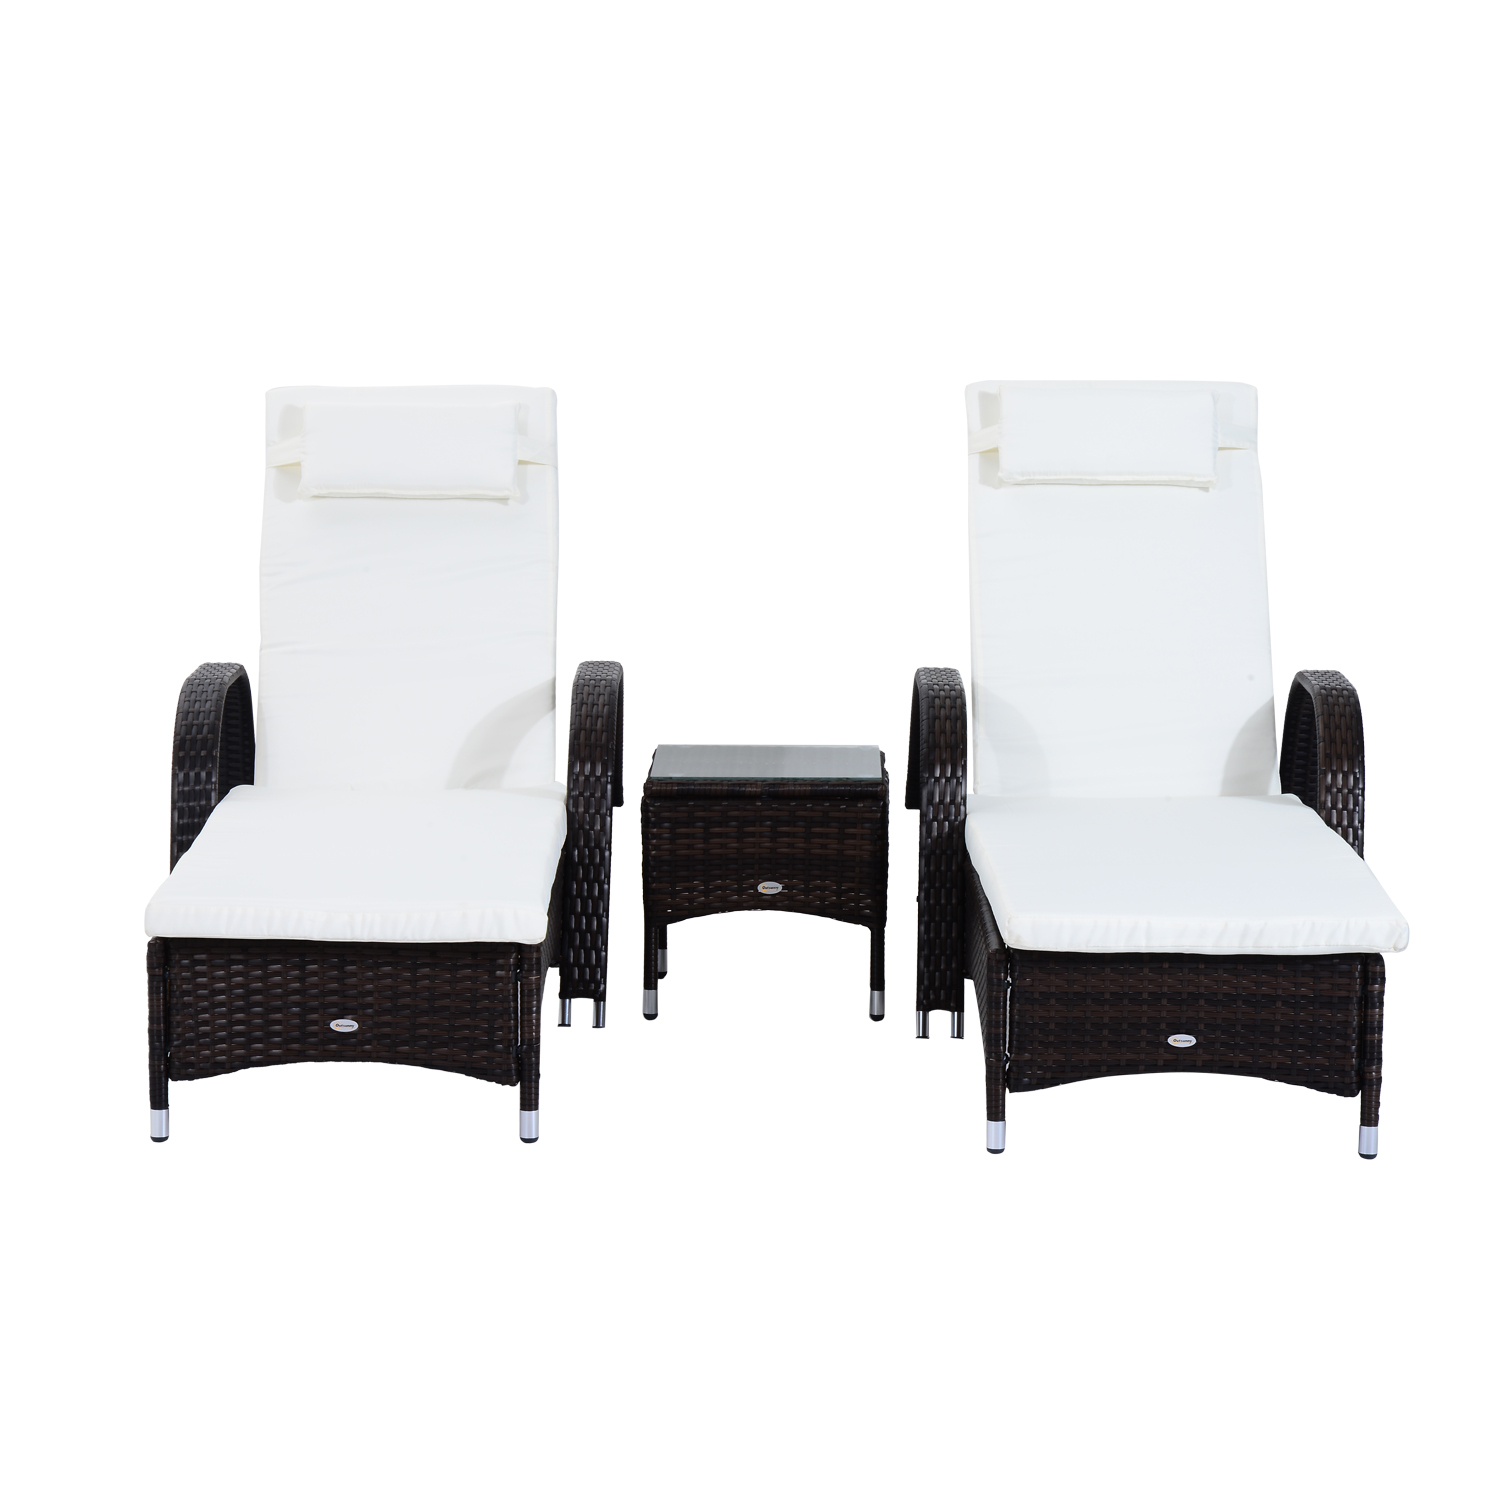 3pcs-Wheeled-Patio-Rattan-Lounge-Set-Adjustable-Reclining-Chaise-w-Side-Table thumbnail 15